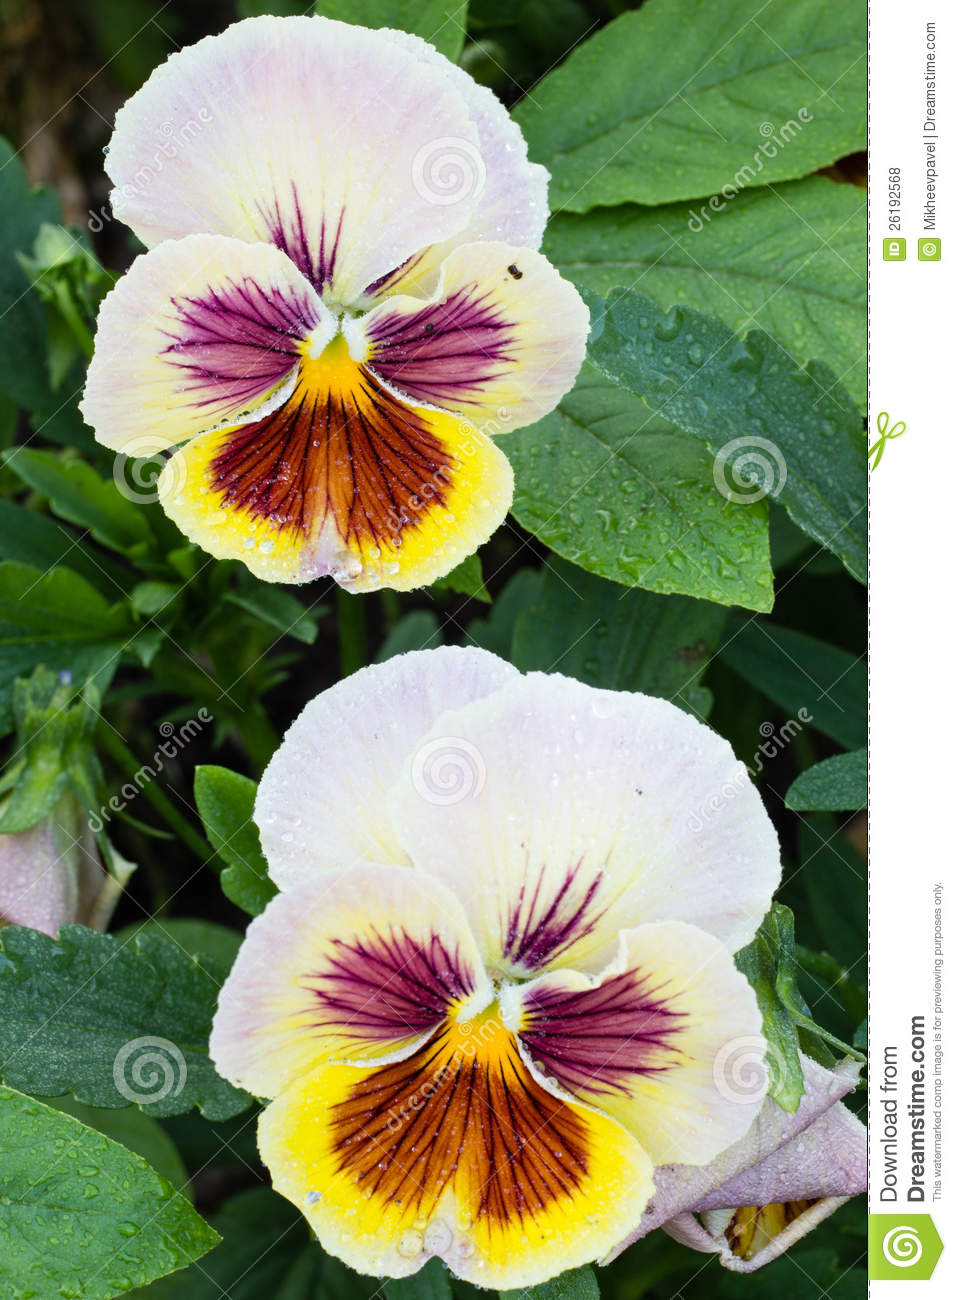 Photo of garden flowers pansy